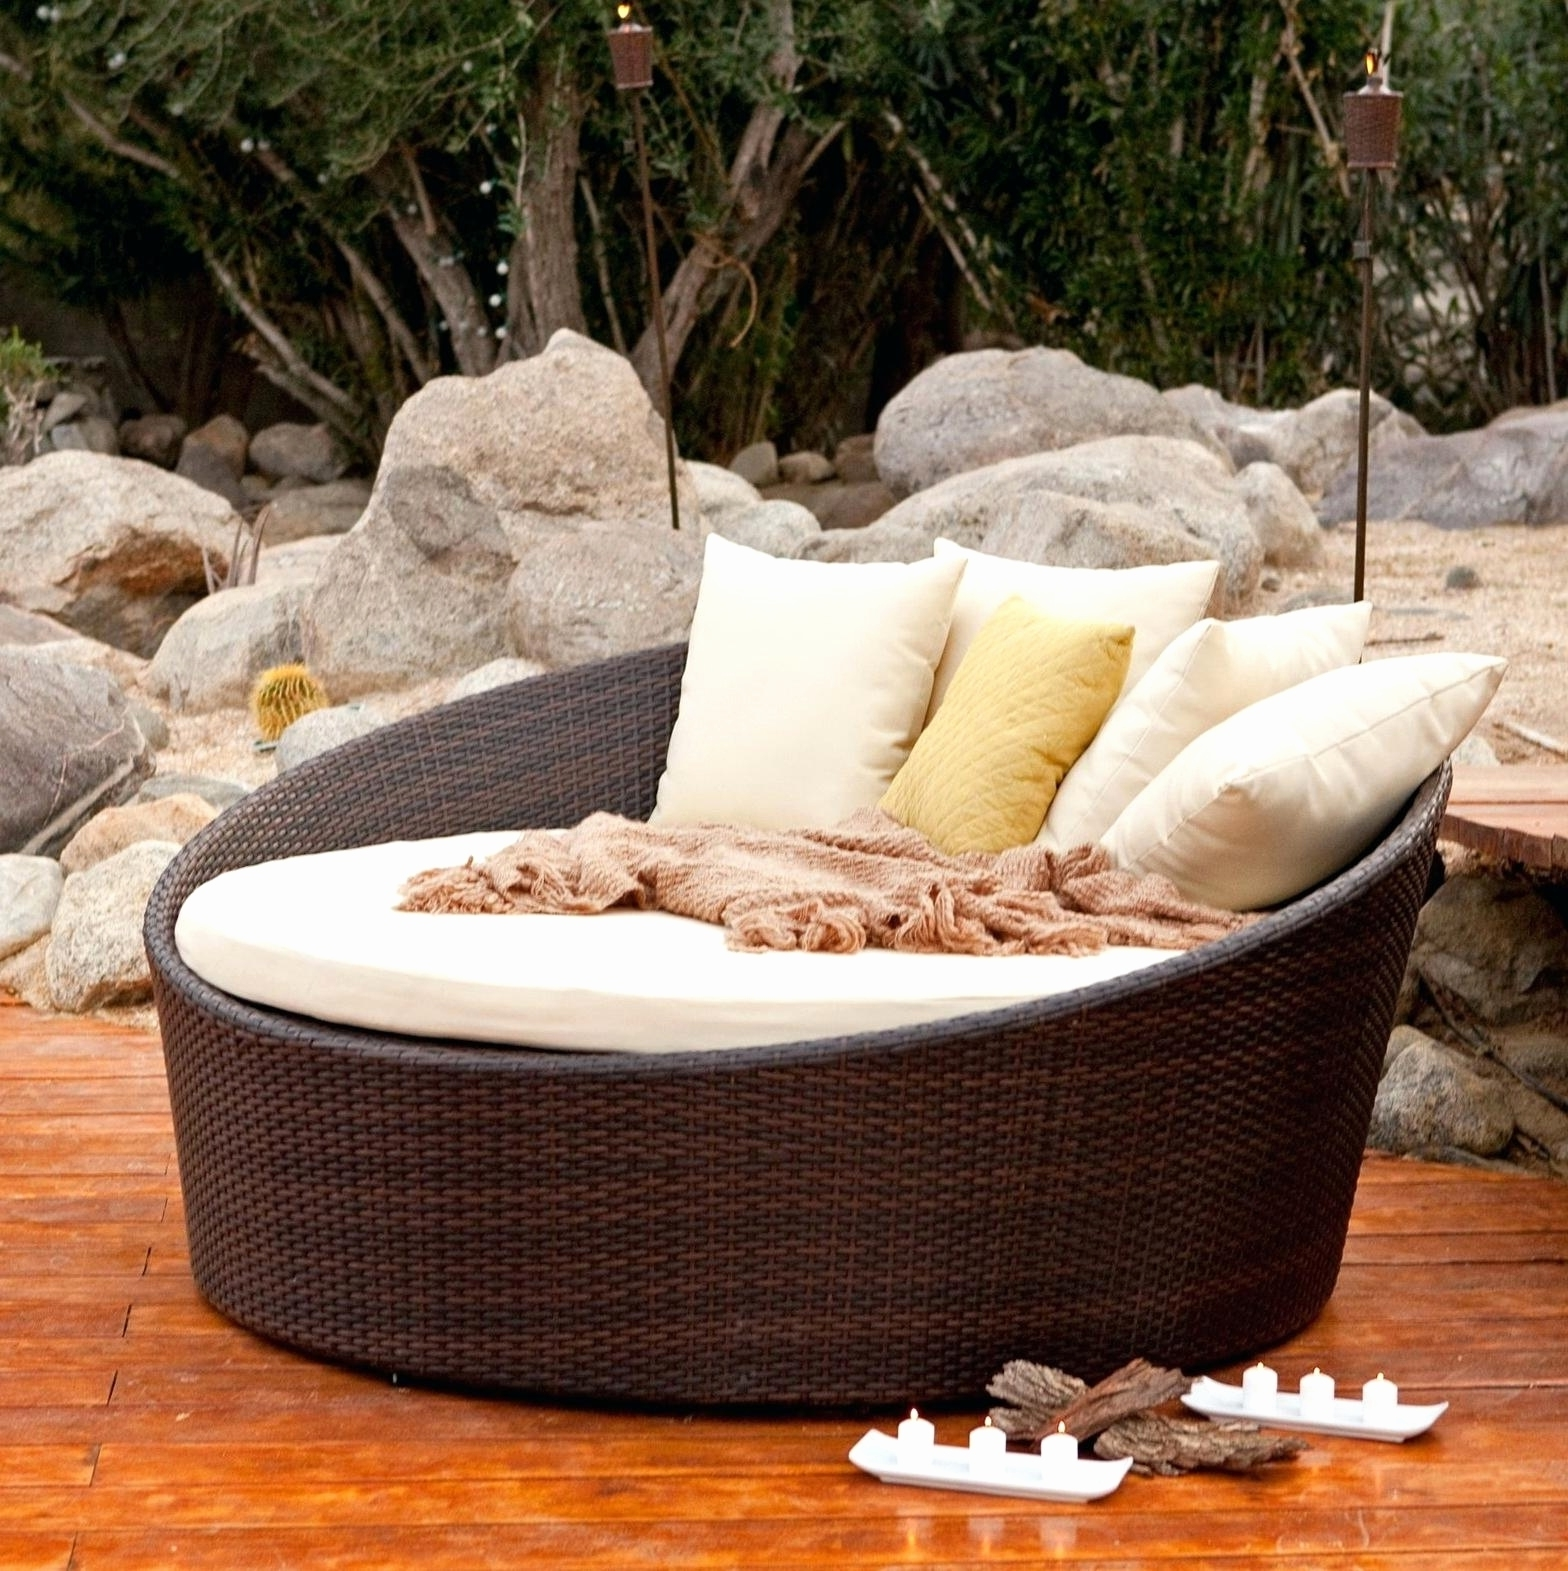 Fashionable Round Chaise Lounges Intended For Convertible Chair : Outdoor Lounge Chairs Patio Chaise Lounge (View 3 of 15)